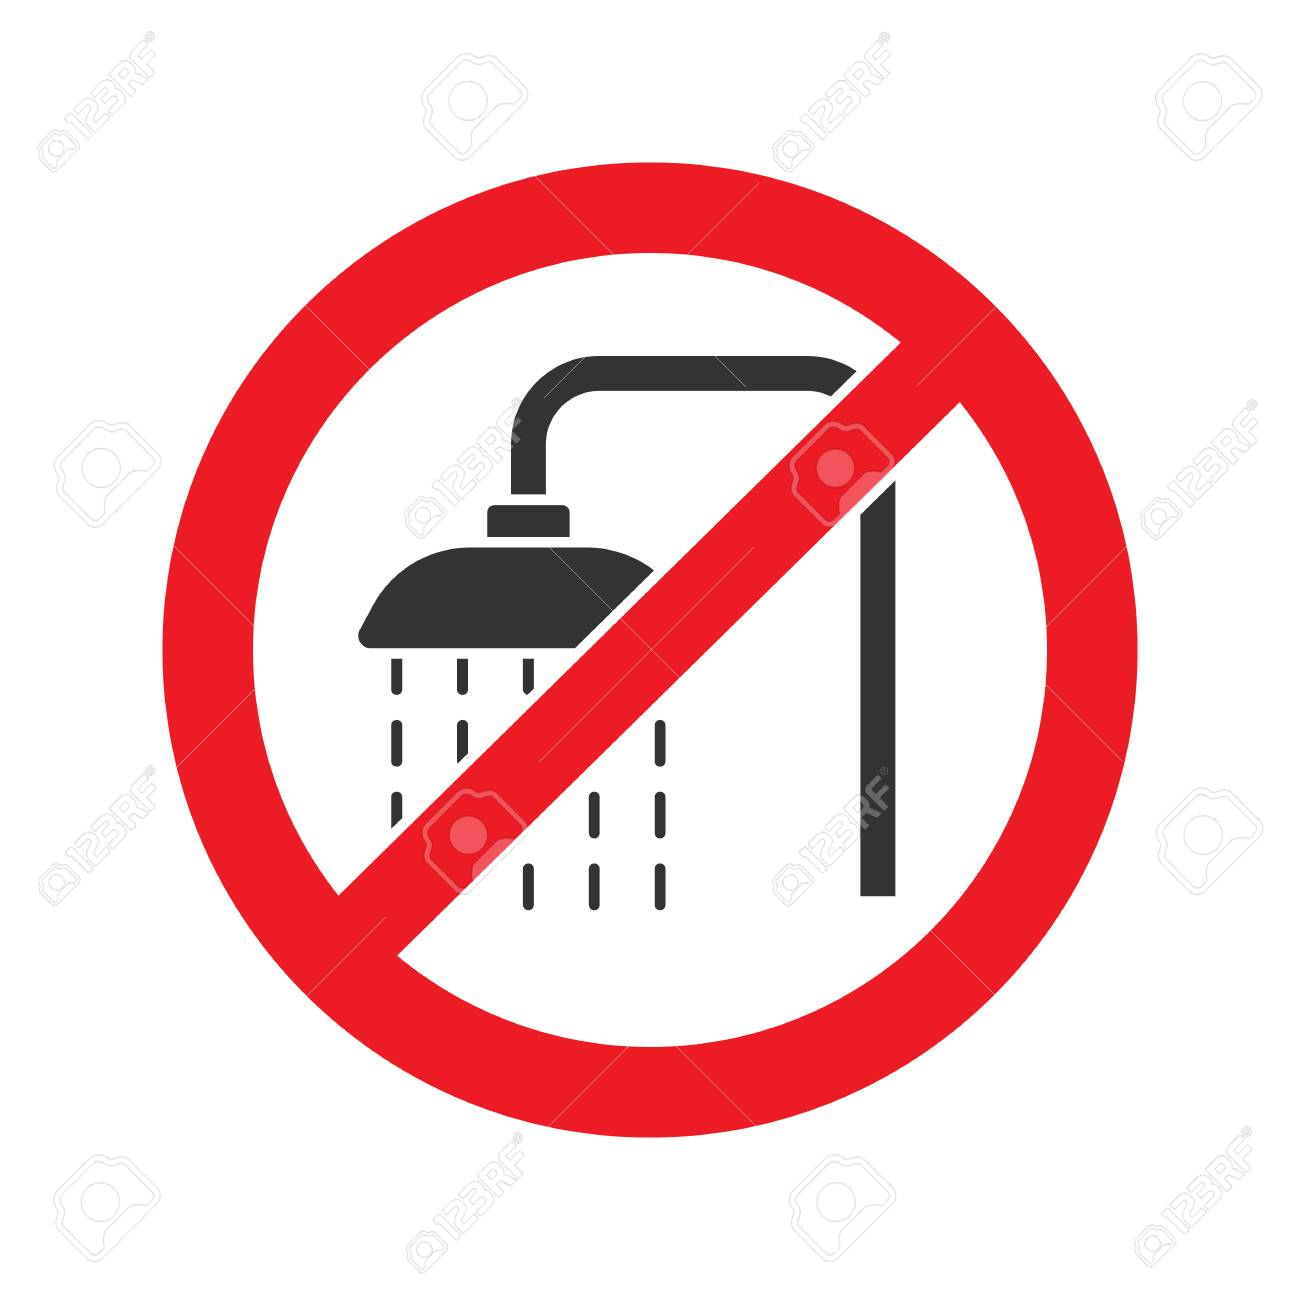 Forbidden sign with shower faucet glyph icon. Stop silhouette symbol. Do not use unit in water. Negative space. Vector isolated illustration - 93837429